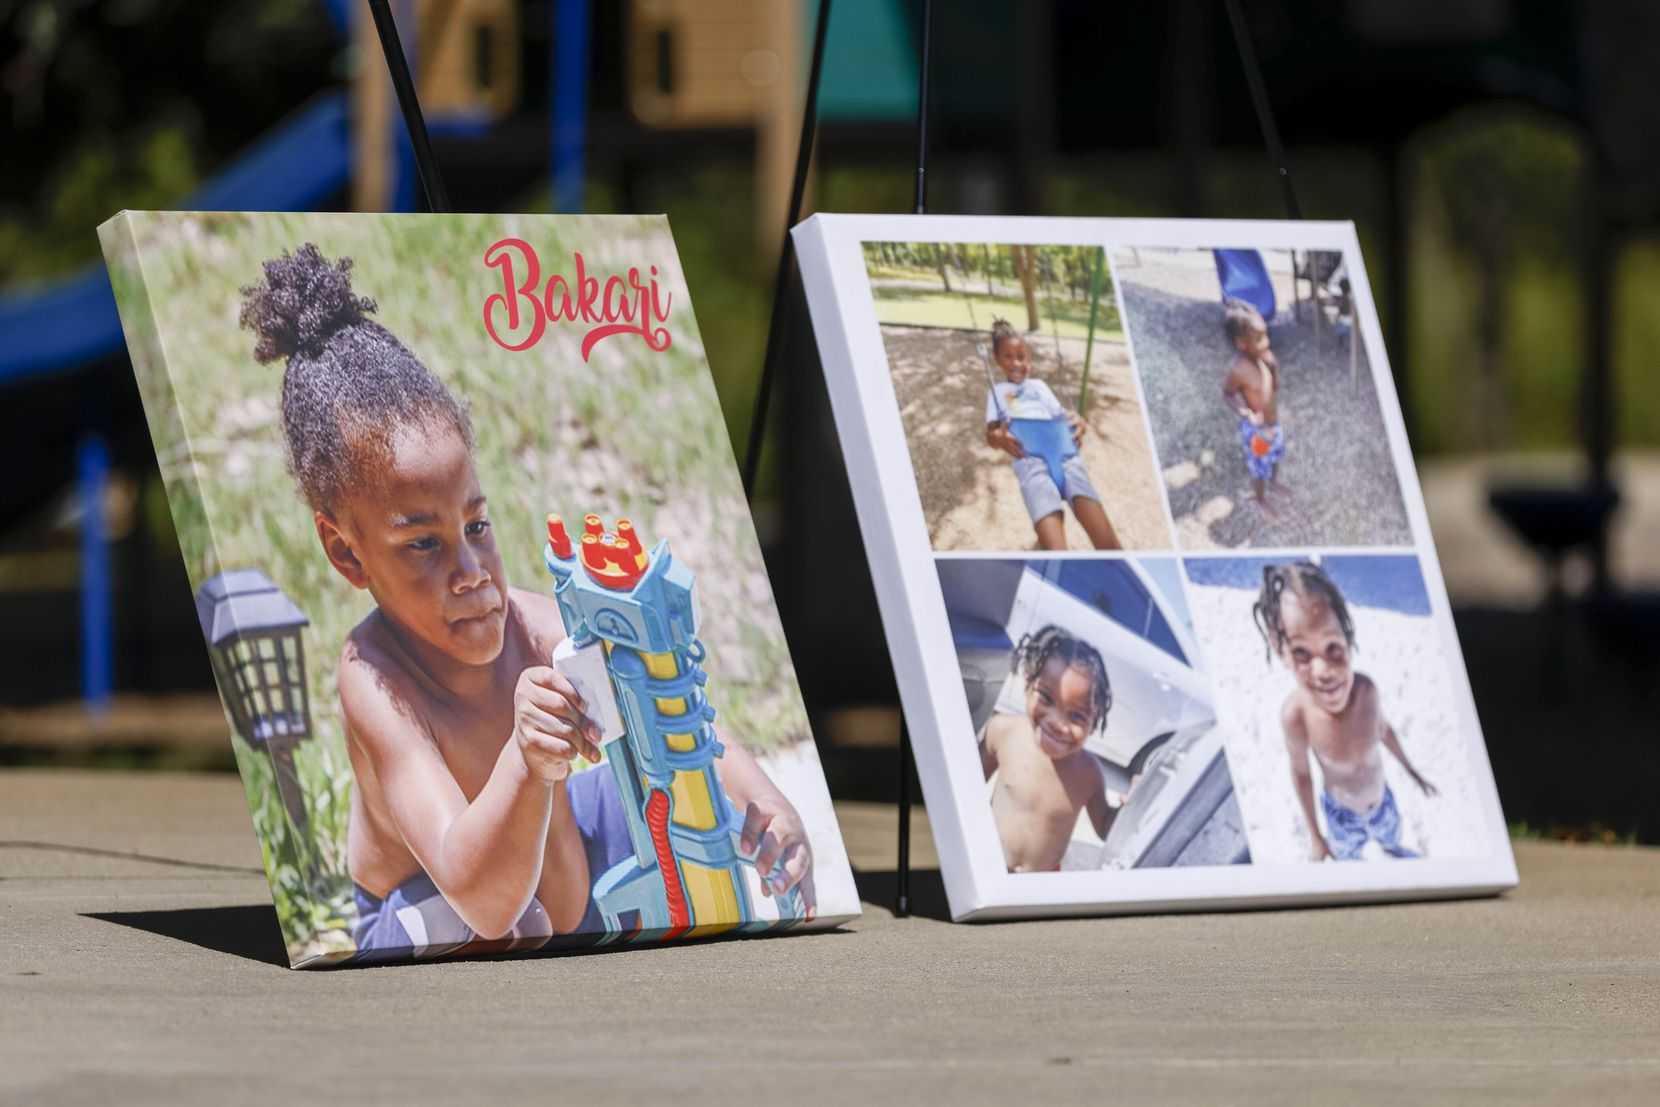 Photos of 3-year-old Bakari Williams sit near the splash pad at Don Misenhimer Park during a press conference Monday in Arlington. Williams died after contracting an amoeba from an Arlington splash pad.